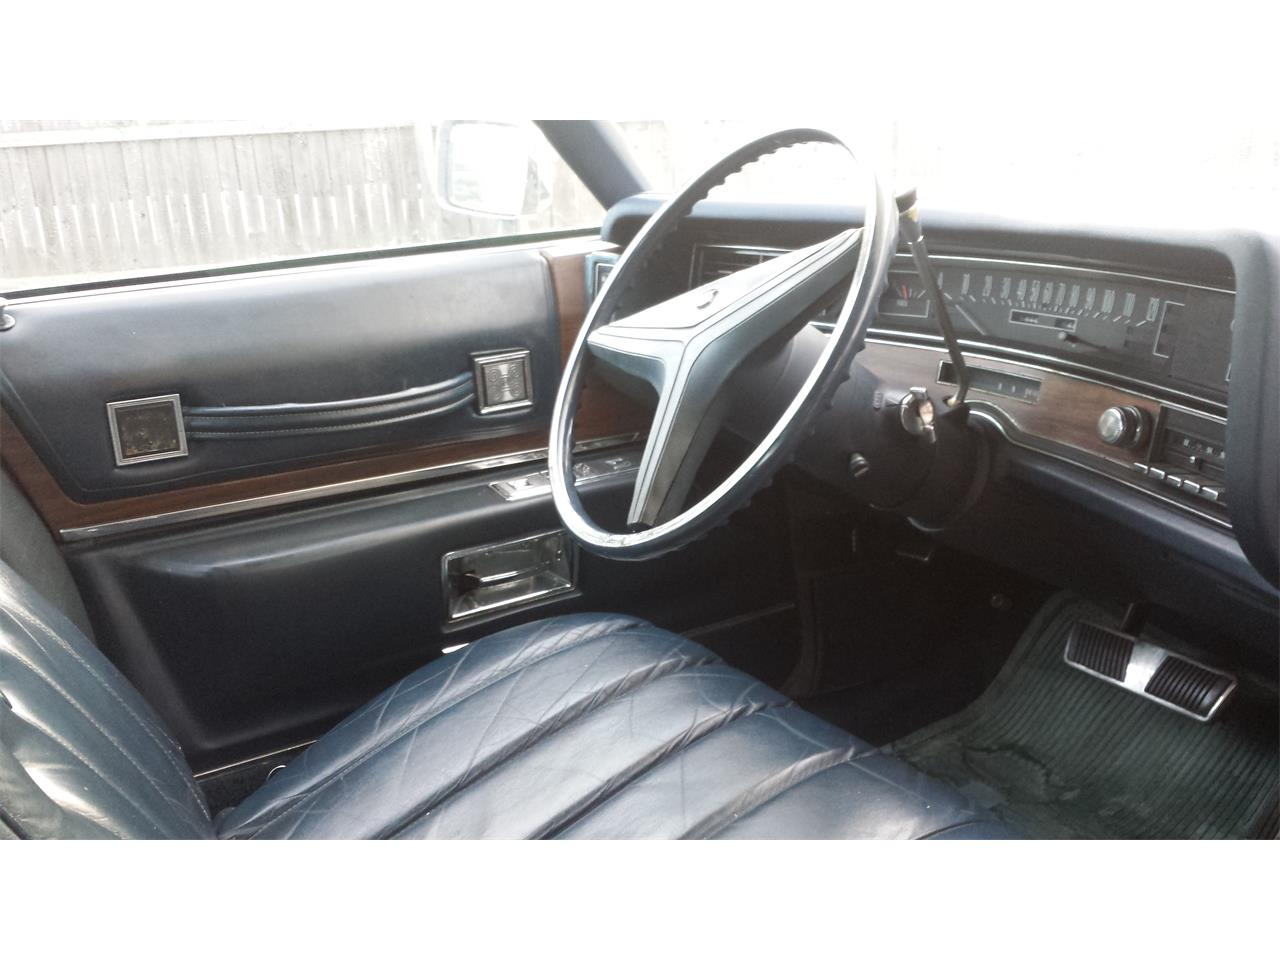 Large Picture of Classic '73 Cadillac DeVille - $5,500.00 - BYGT